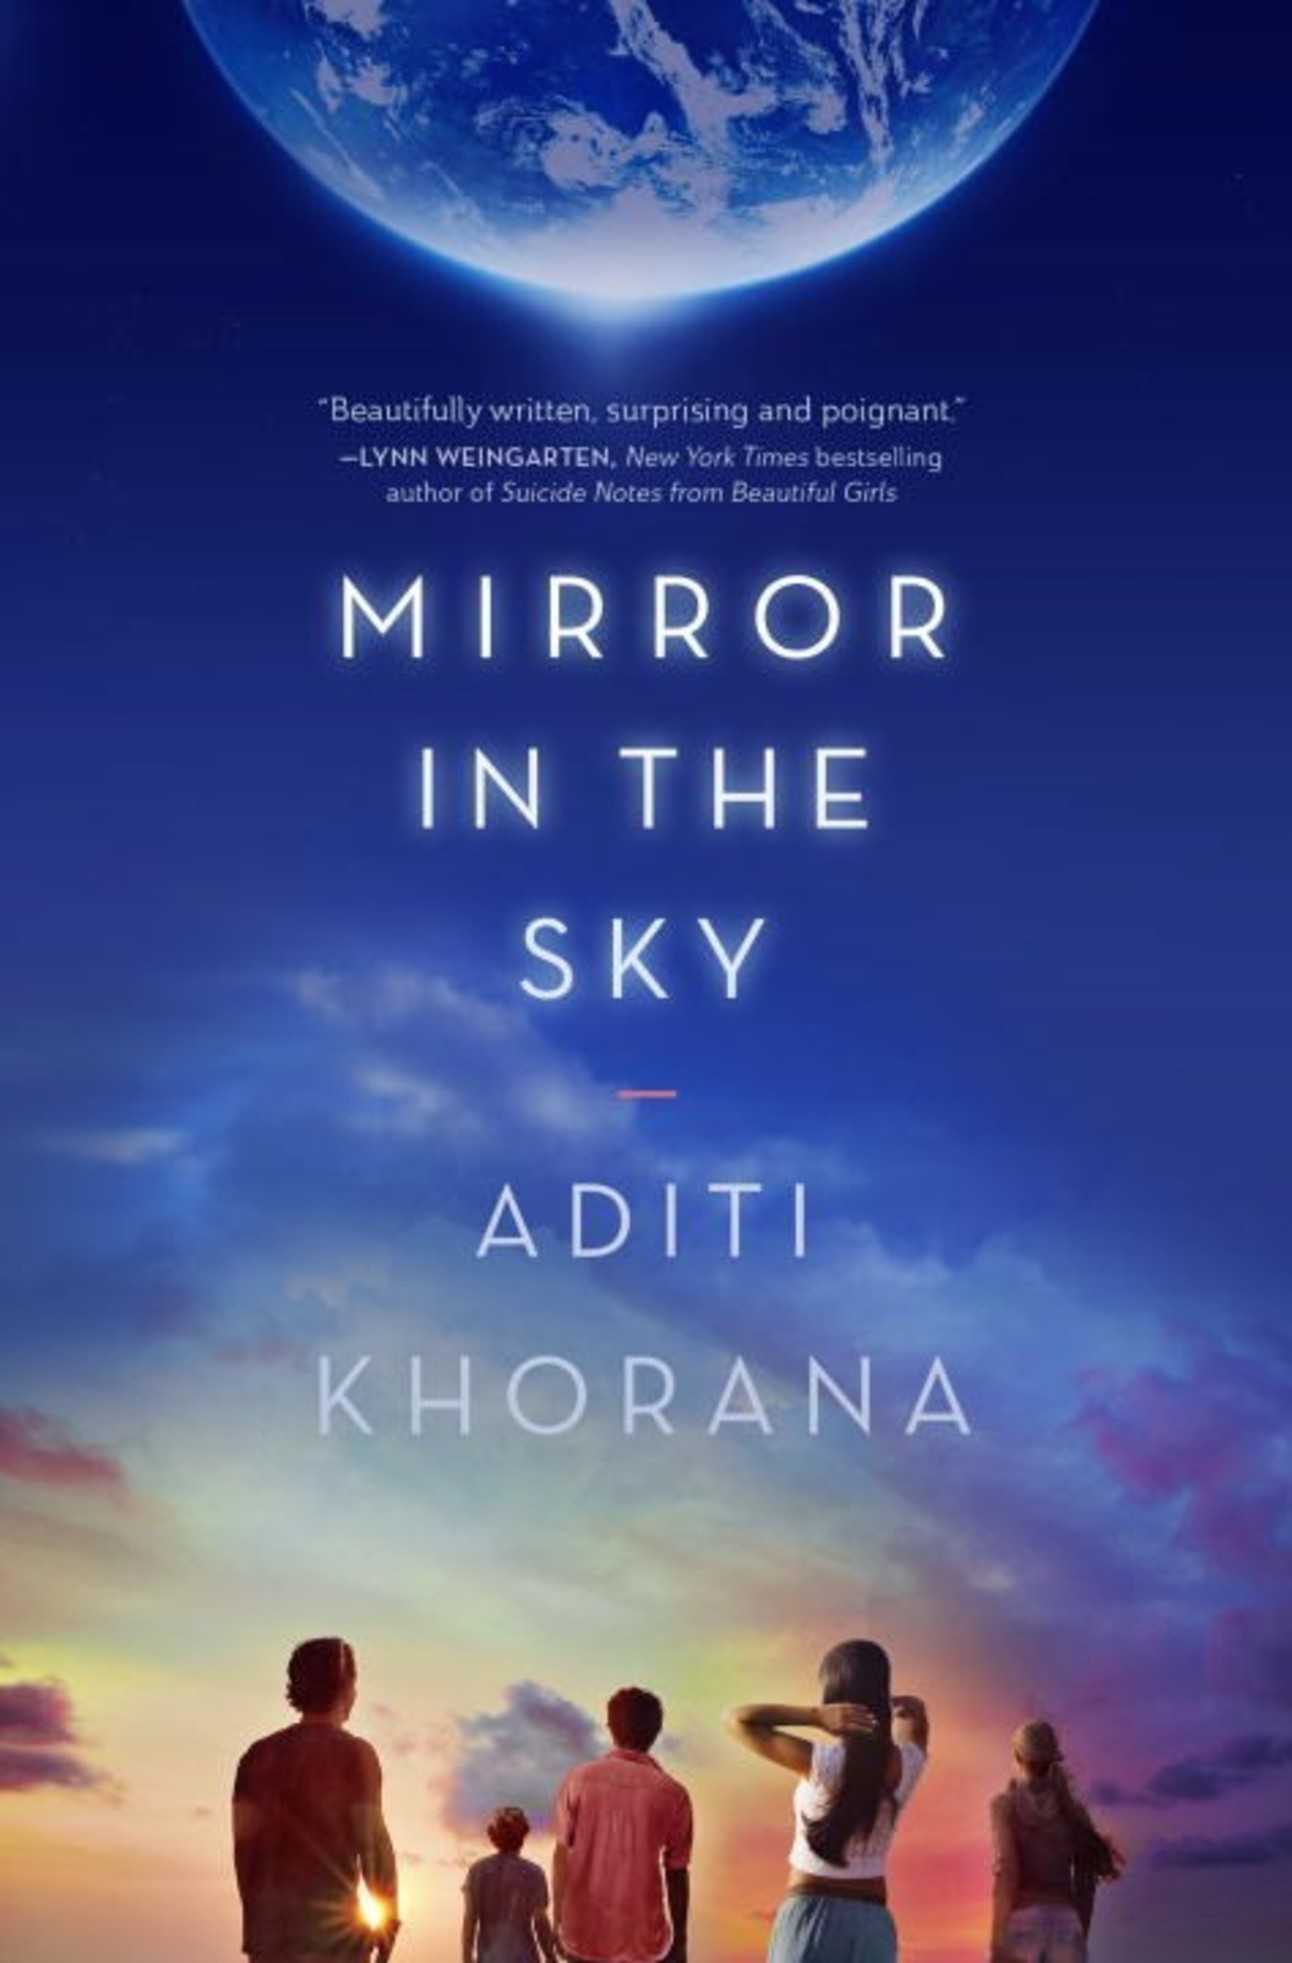 mirror in the sky aditi khorana